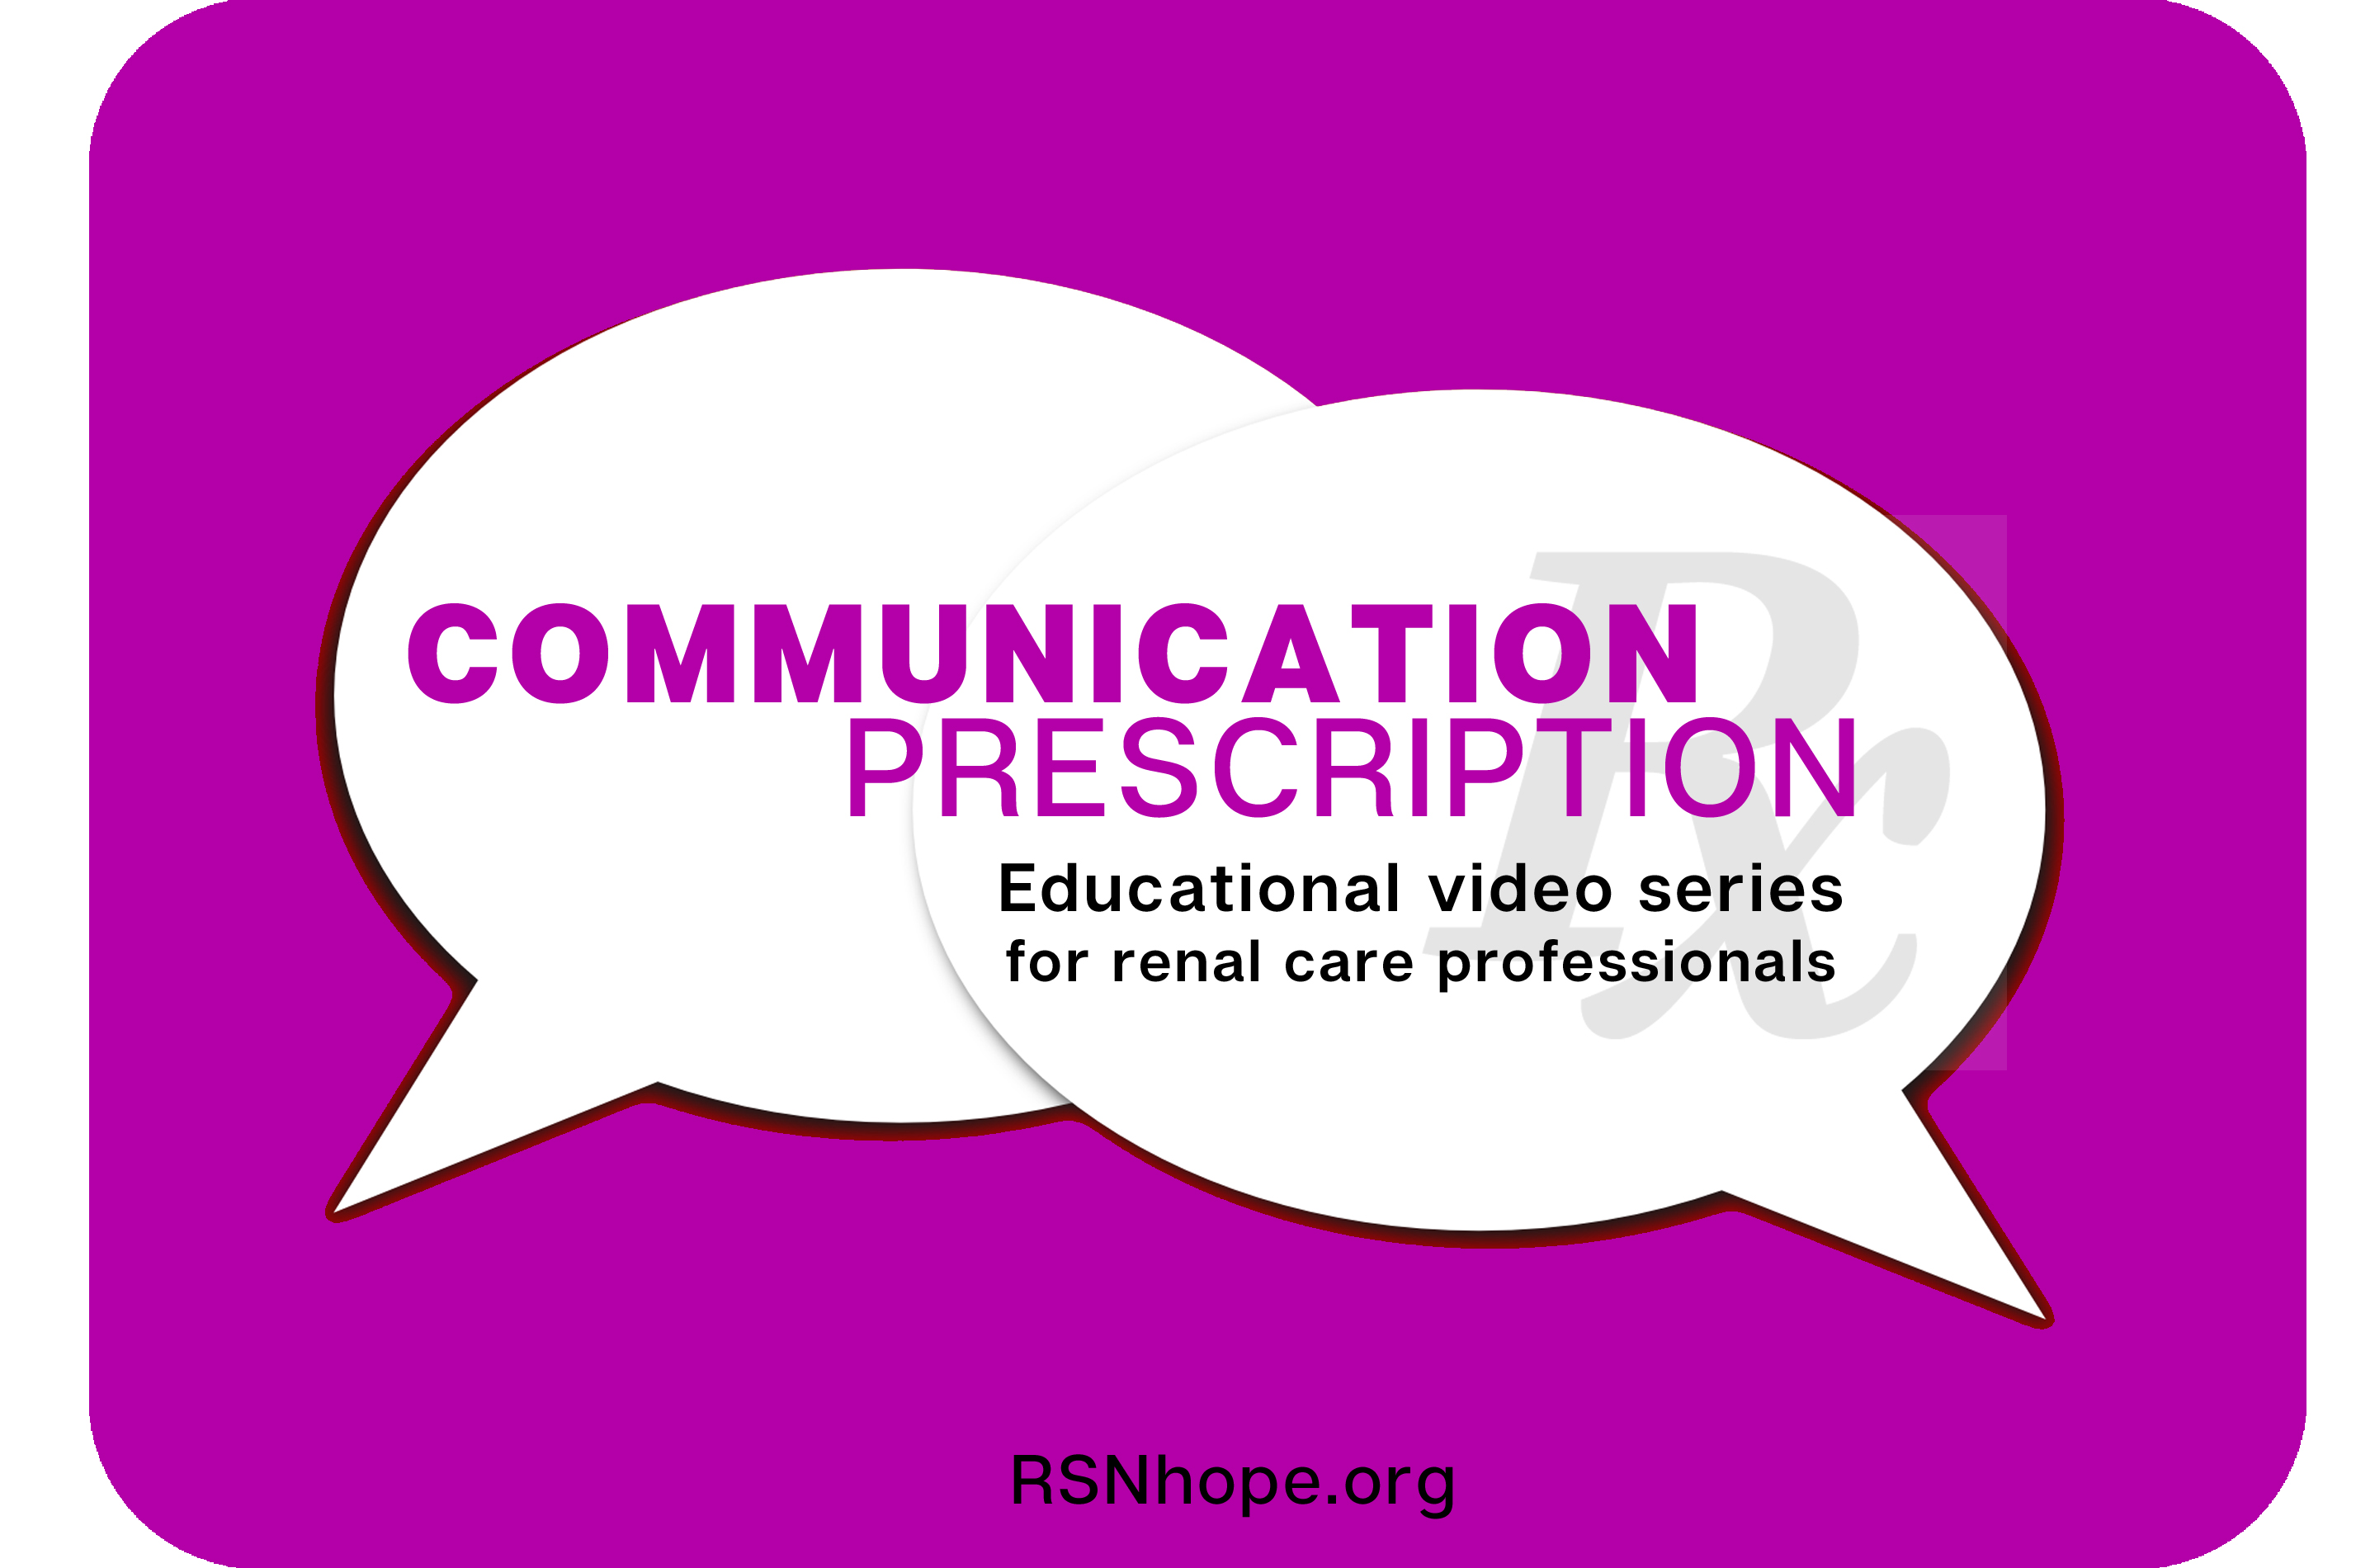 communication prescription-educational videos for healthcare professionals - kidney disease - lori hartwell